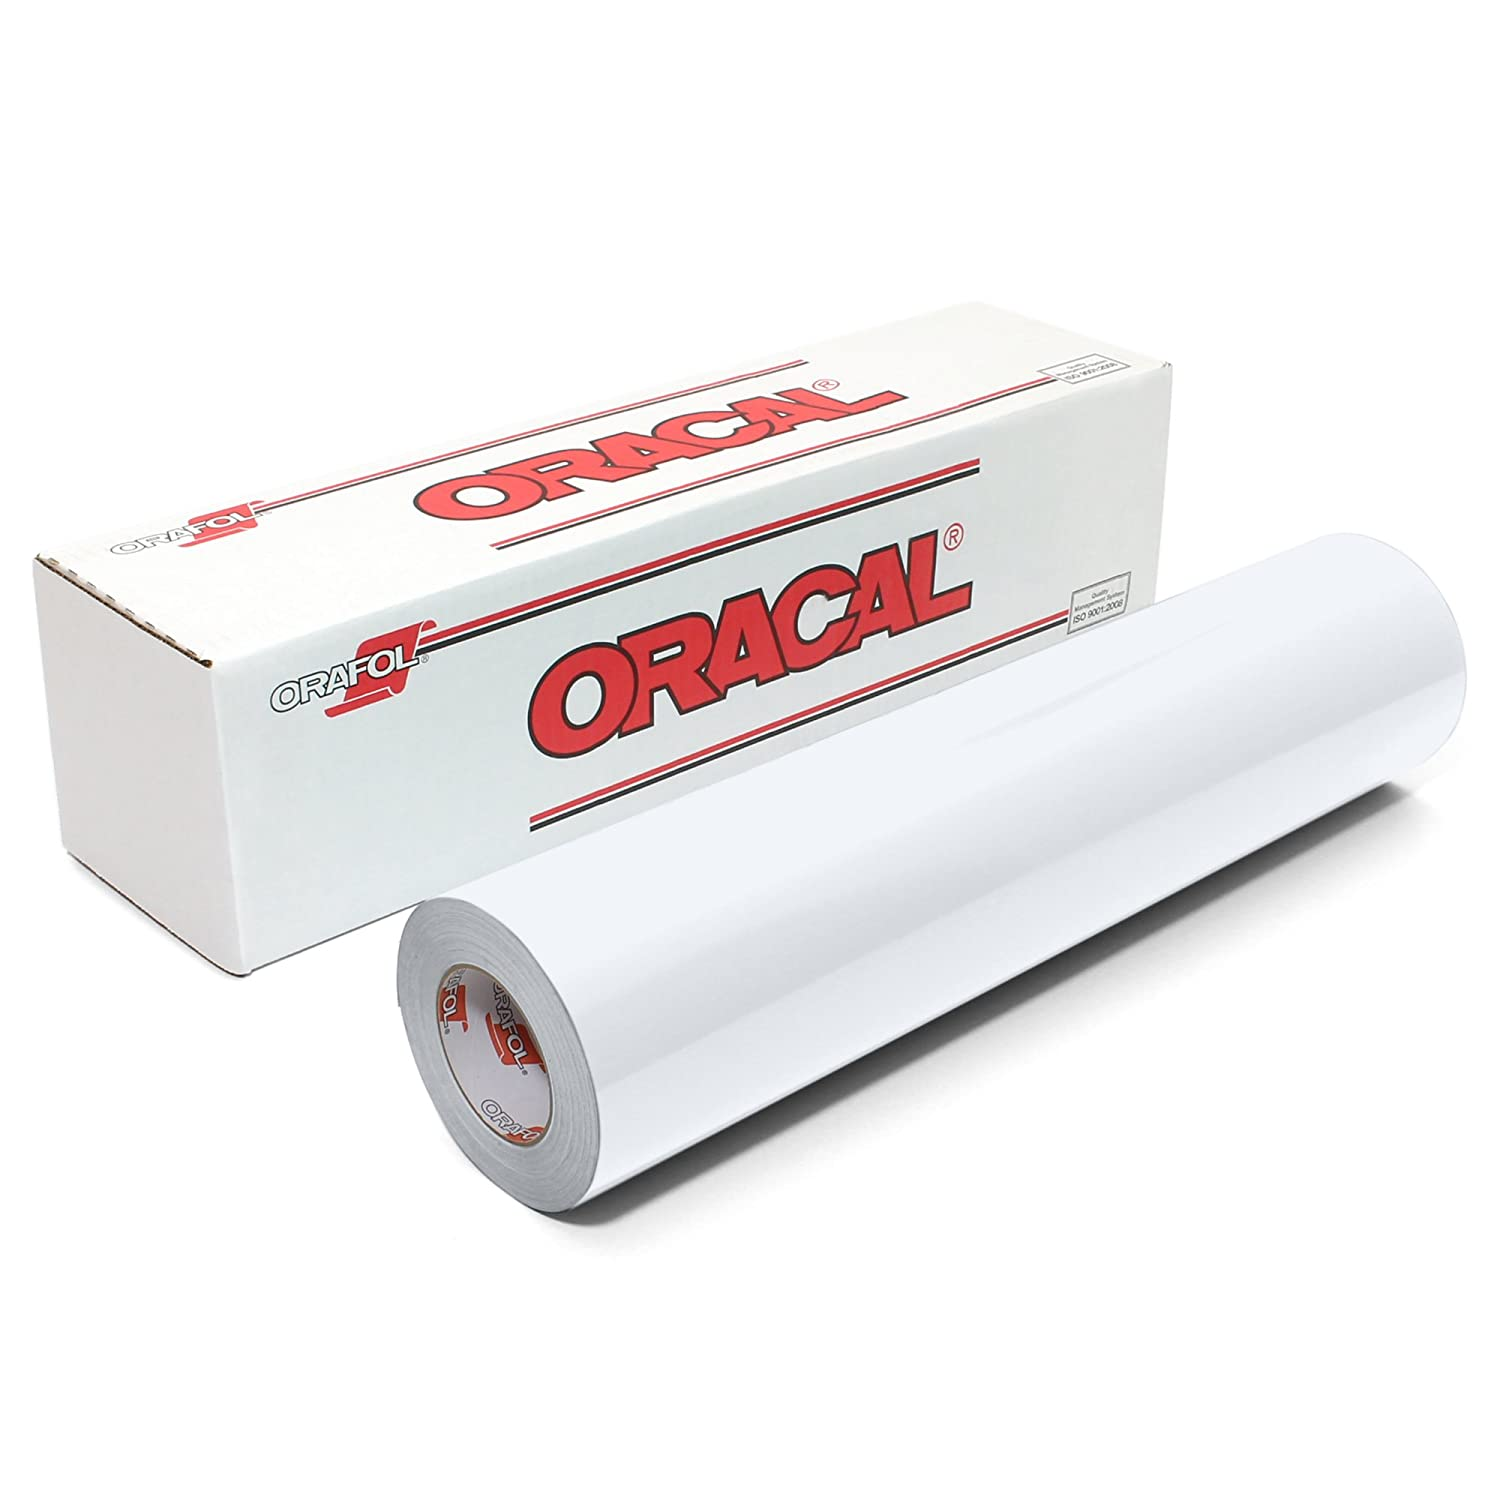 White Oracal 651 Glossy Vinyl Roll 24 Inches by 150 Feet